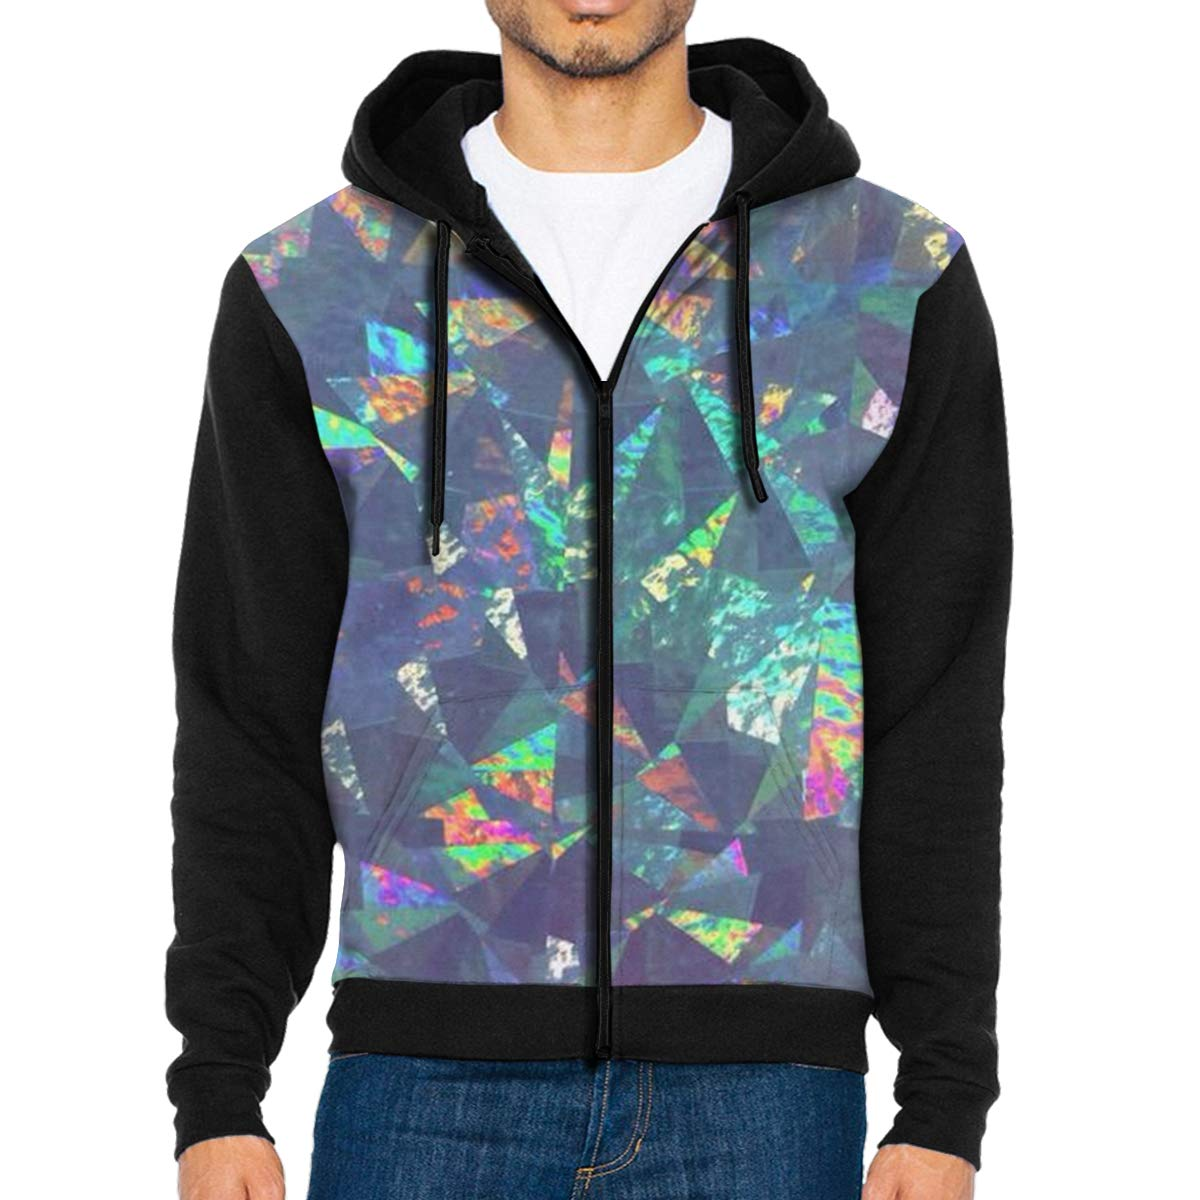 MHBGMYES Colorful Paper Lightweight Mans Jacket with Hood Long Sleeved Zippered Outwear